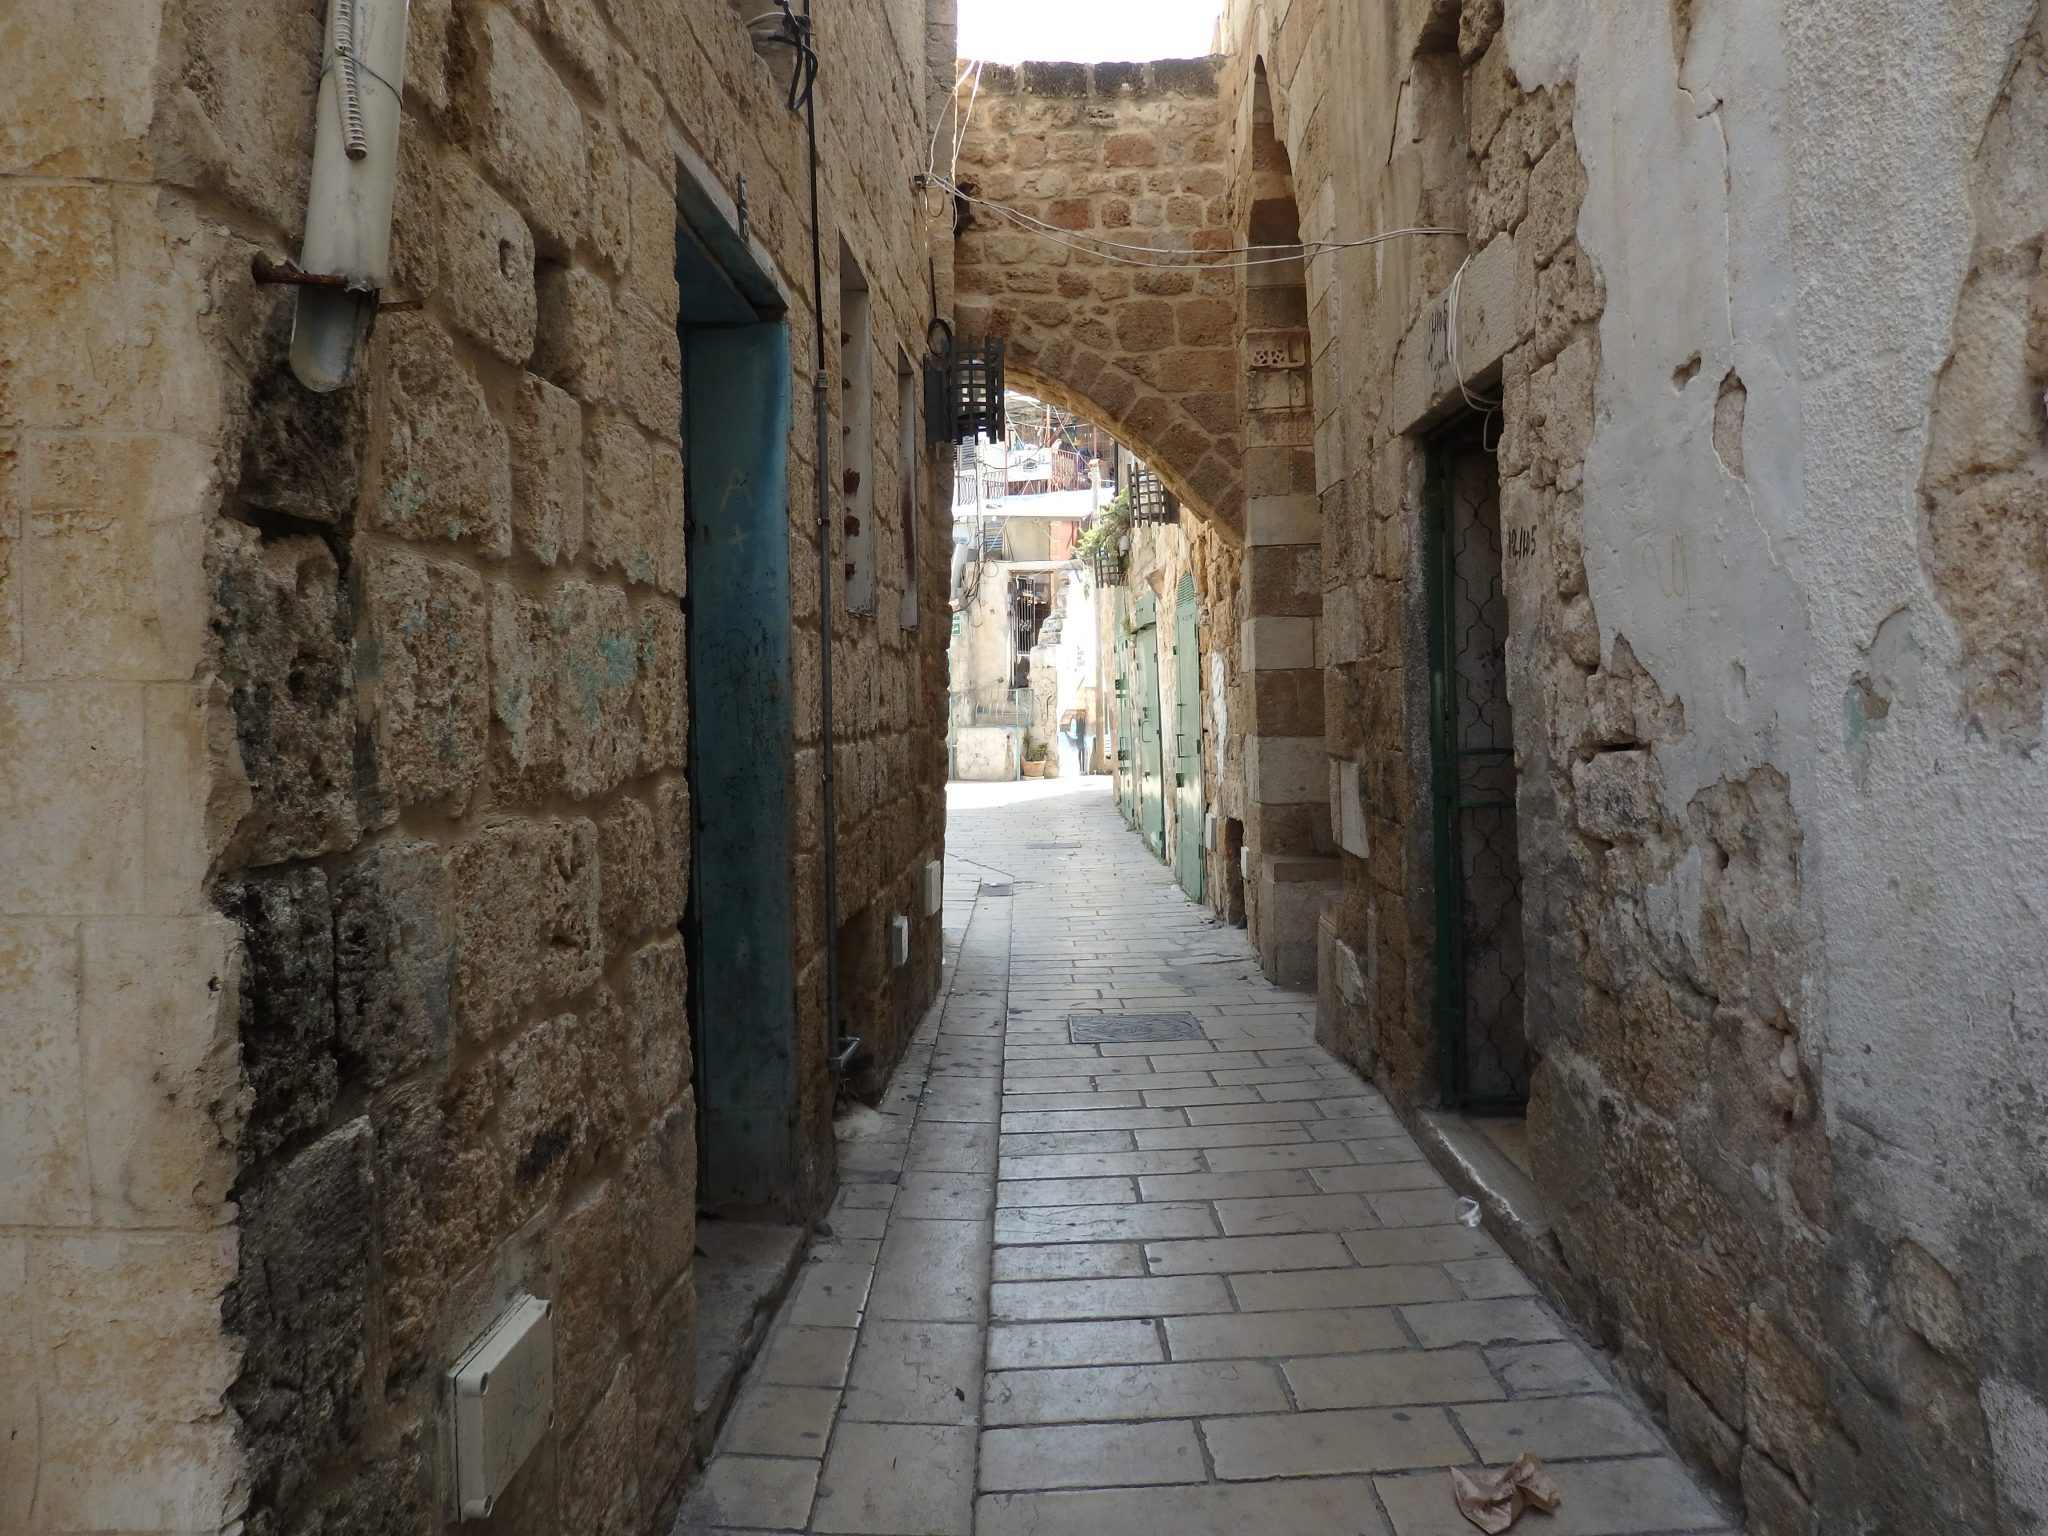 A narrow street in Akko old city shows remnants of its history.